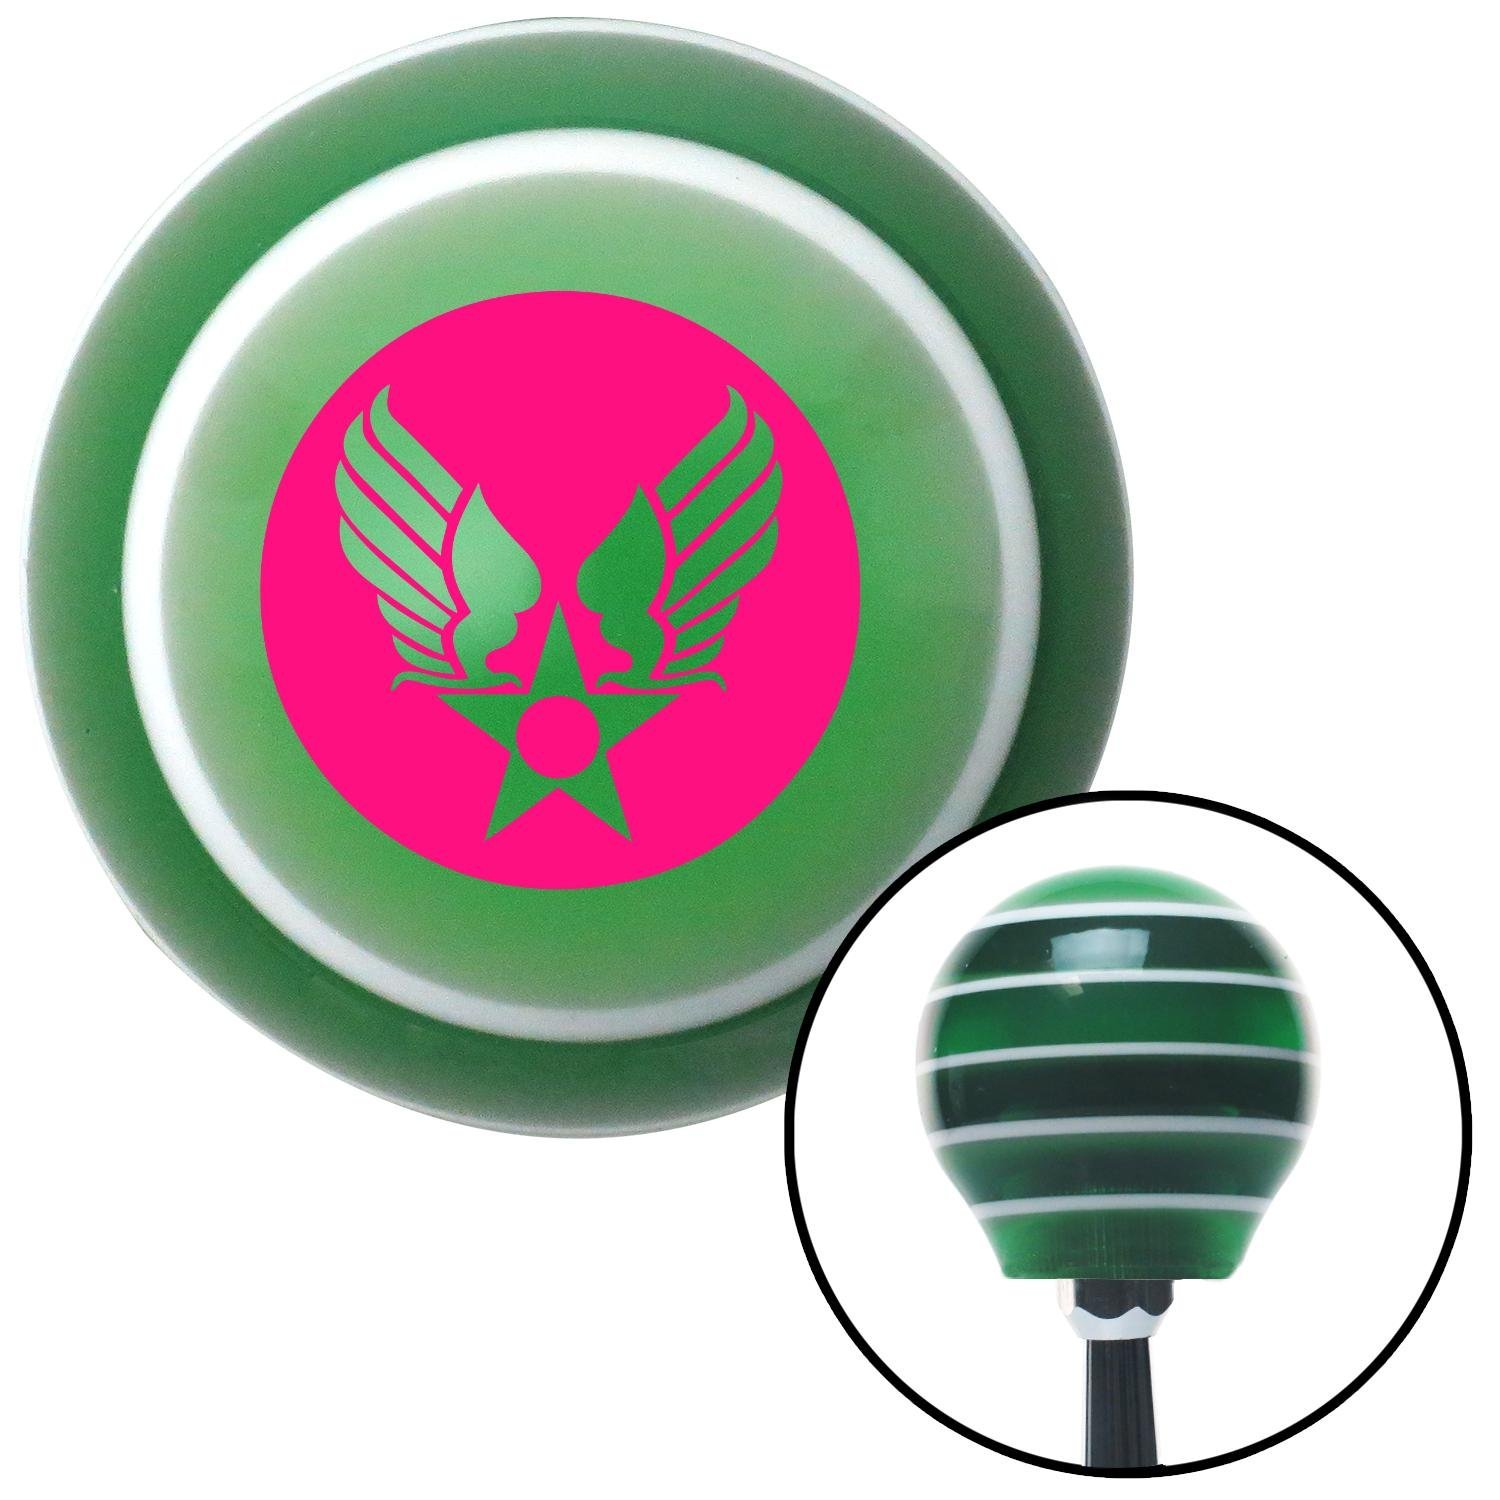 American Shifter 124515 Green Stripe Shift Knob with M16 x 1.5 Insert Pink Army Air Corps